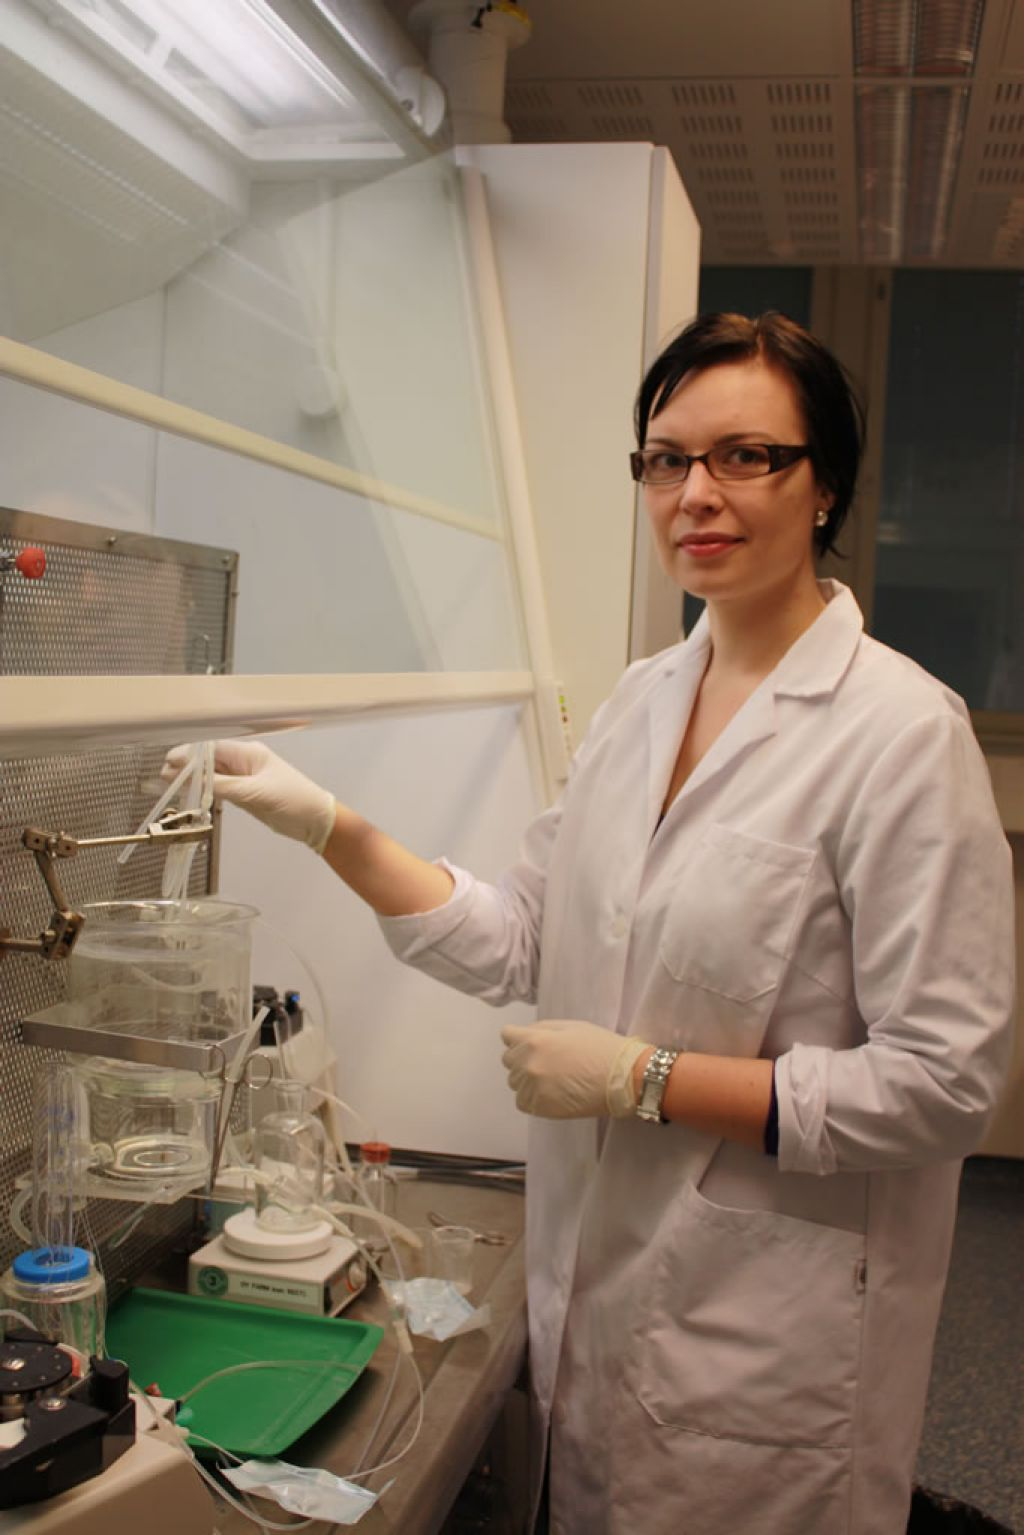 PhD student Maria Kummu working in the lab at the University of Oulu. - © University of Oulu